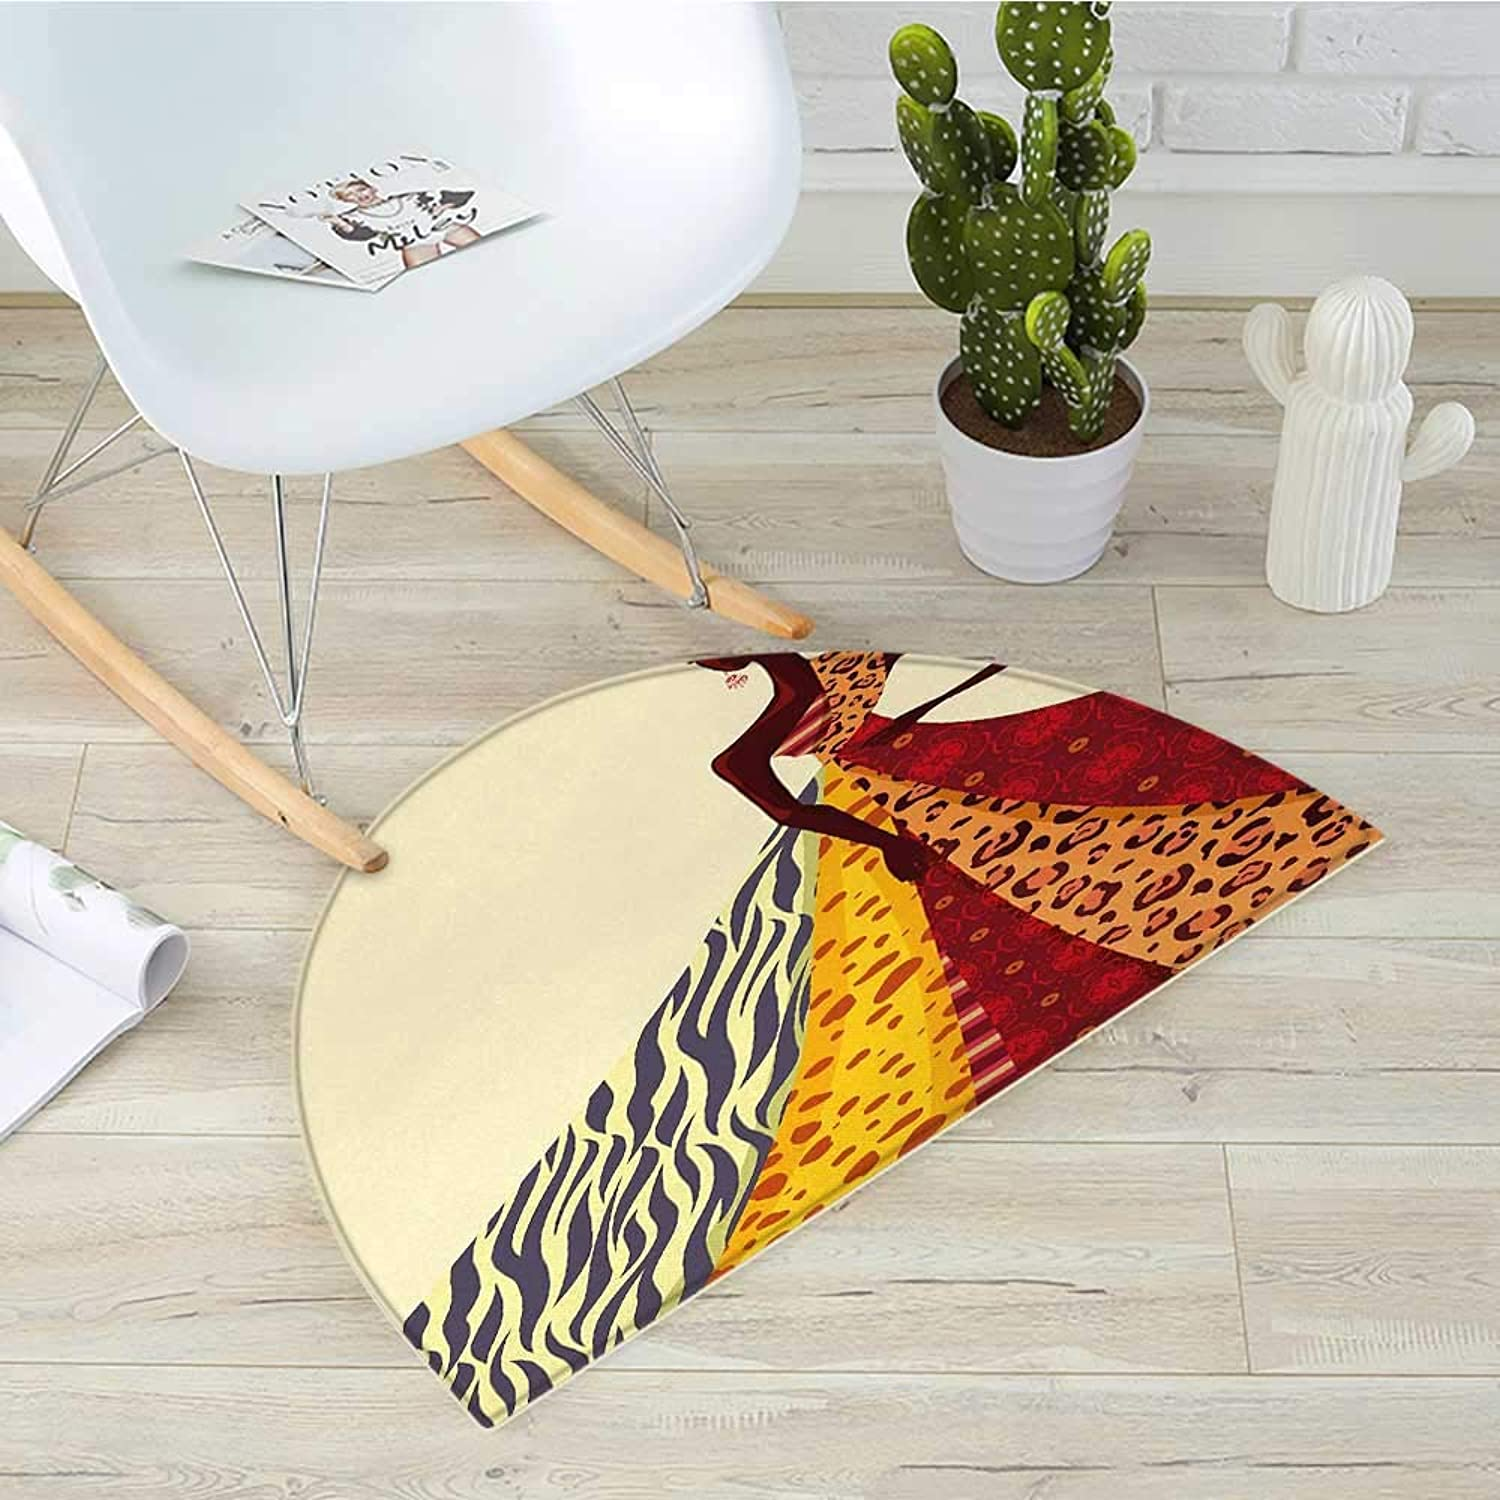 Modern Half Round Door mats African Girl Posing with a Dress of Different Design Patterned Image Artful Print Bathroom Mat H 35.4  xD 53.1  Multicolor